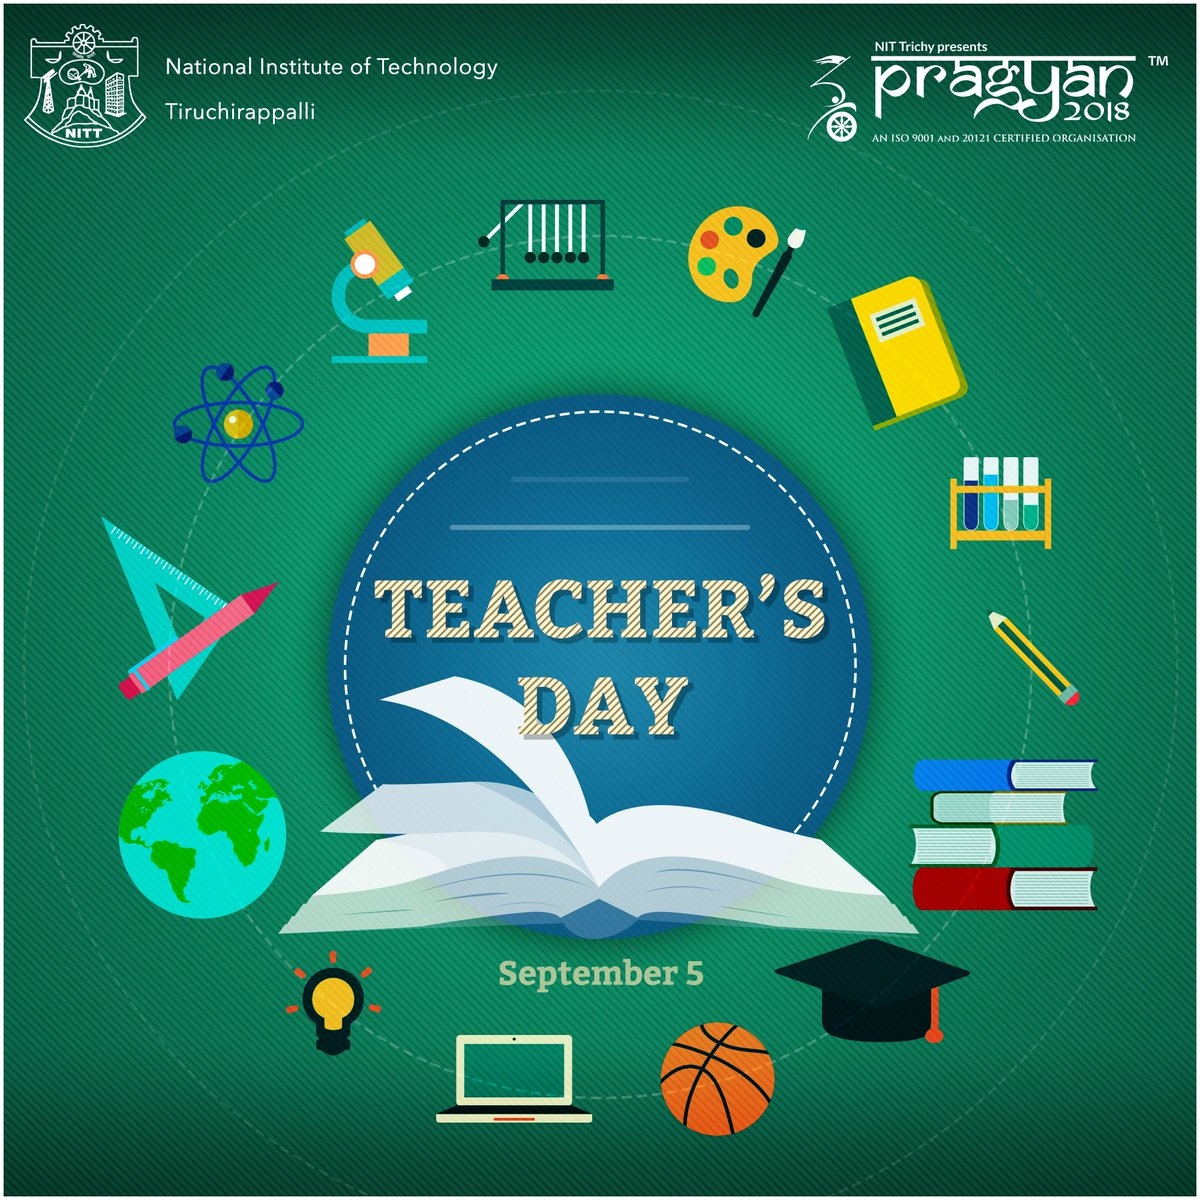 On this #TeachersDay, #Pragyan extends its sincere gratitude towards all teachers for playing a pivotal role in the lives of their students! <br>http://pic.twitter.com/0hymLlCPzN